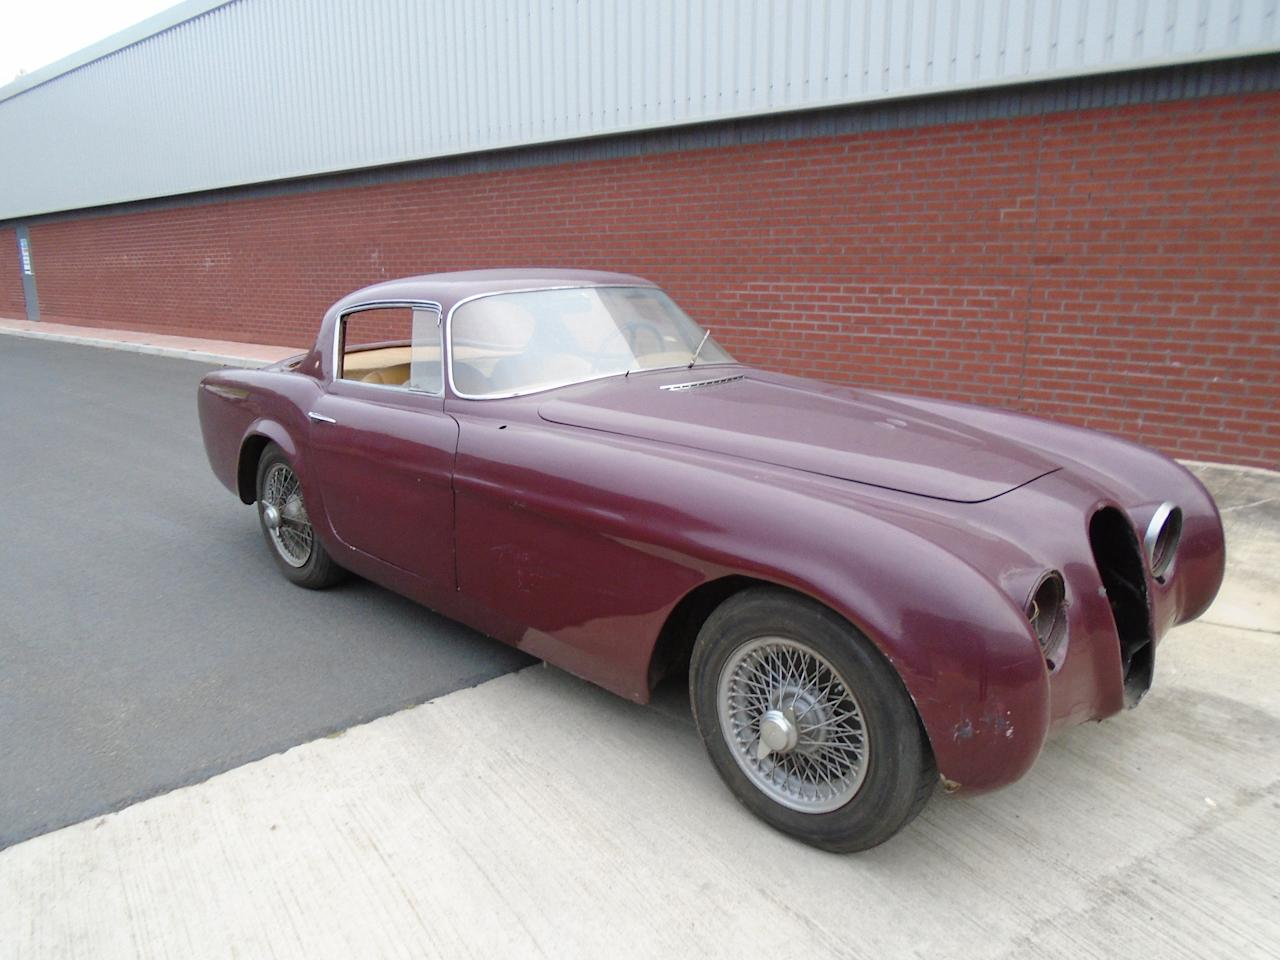 <p>Classic Motor Cars Limited bought the Jaguar from a German collector in 2015. He had purchased it in the US in 1978 with the intention of restoring but never got round to it. </p>